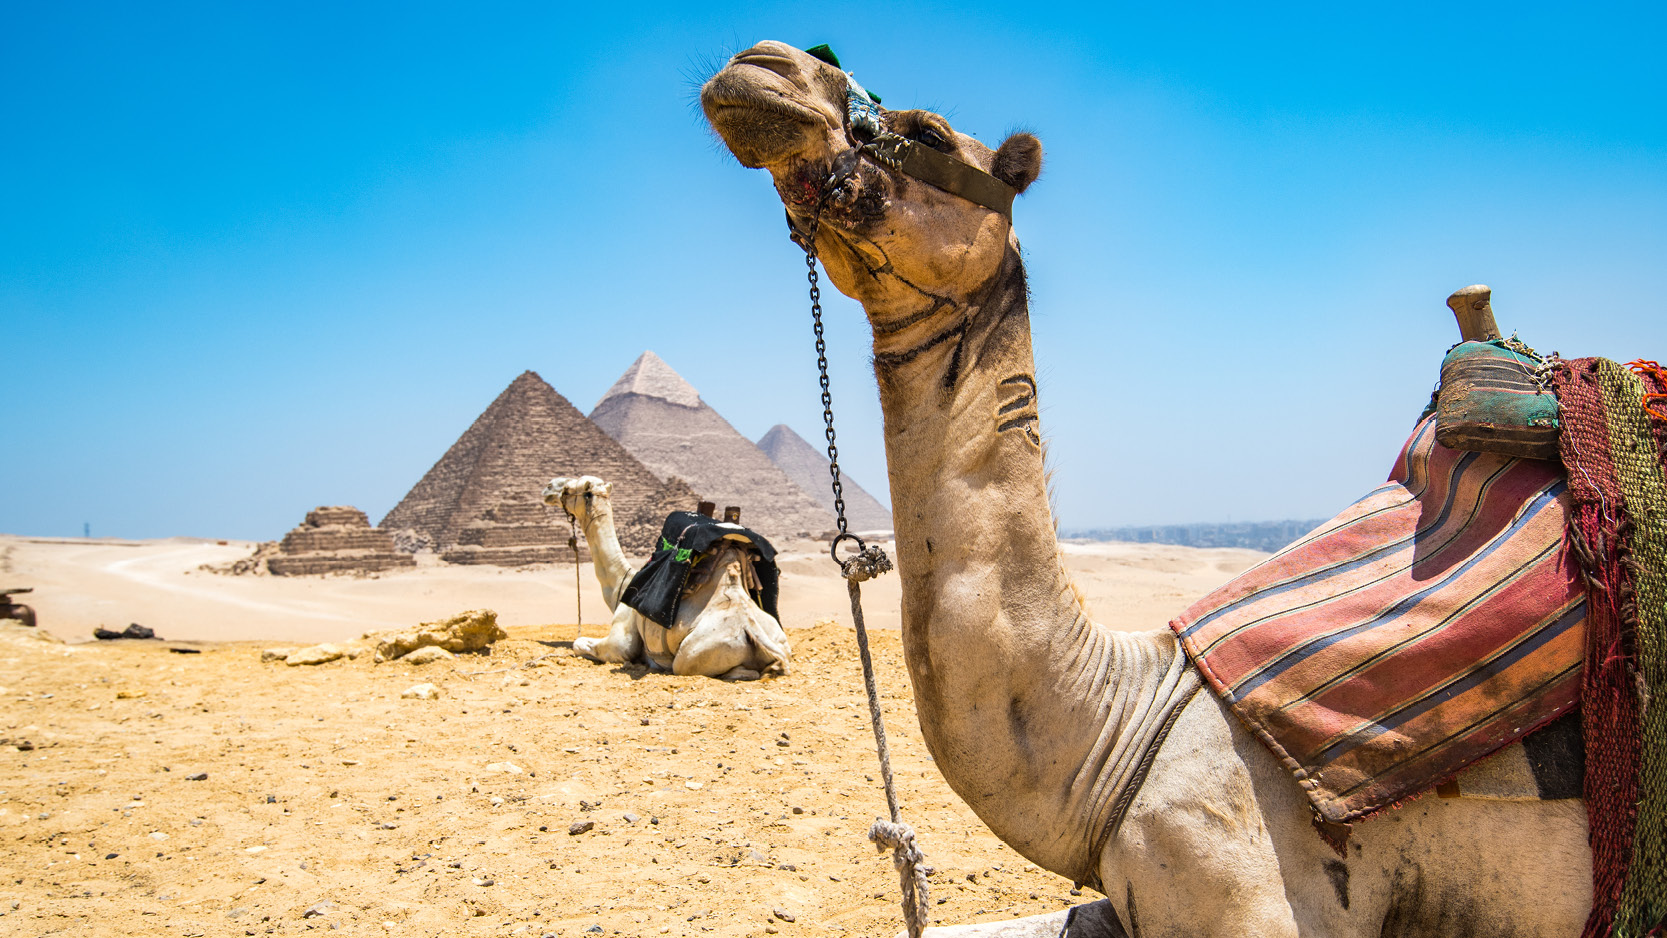 two saddled camels rest in front of the pyramids of giza